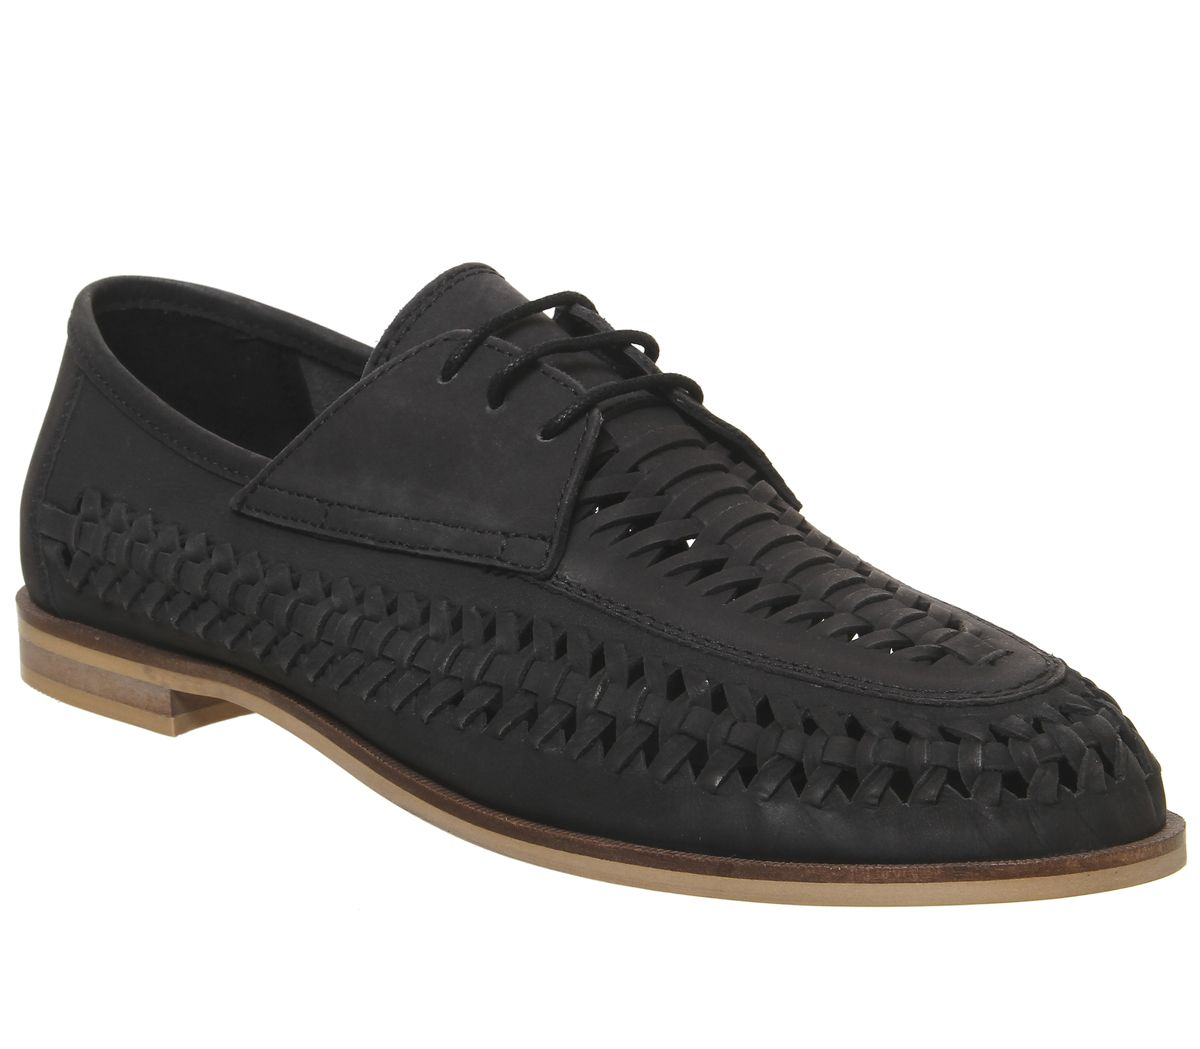 d3cbf1a5534 Office Lambeth Weave Lace Up Shoes Black Washed Leather - Casual